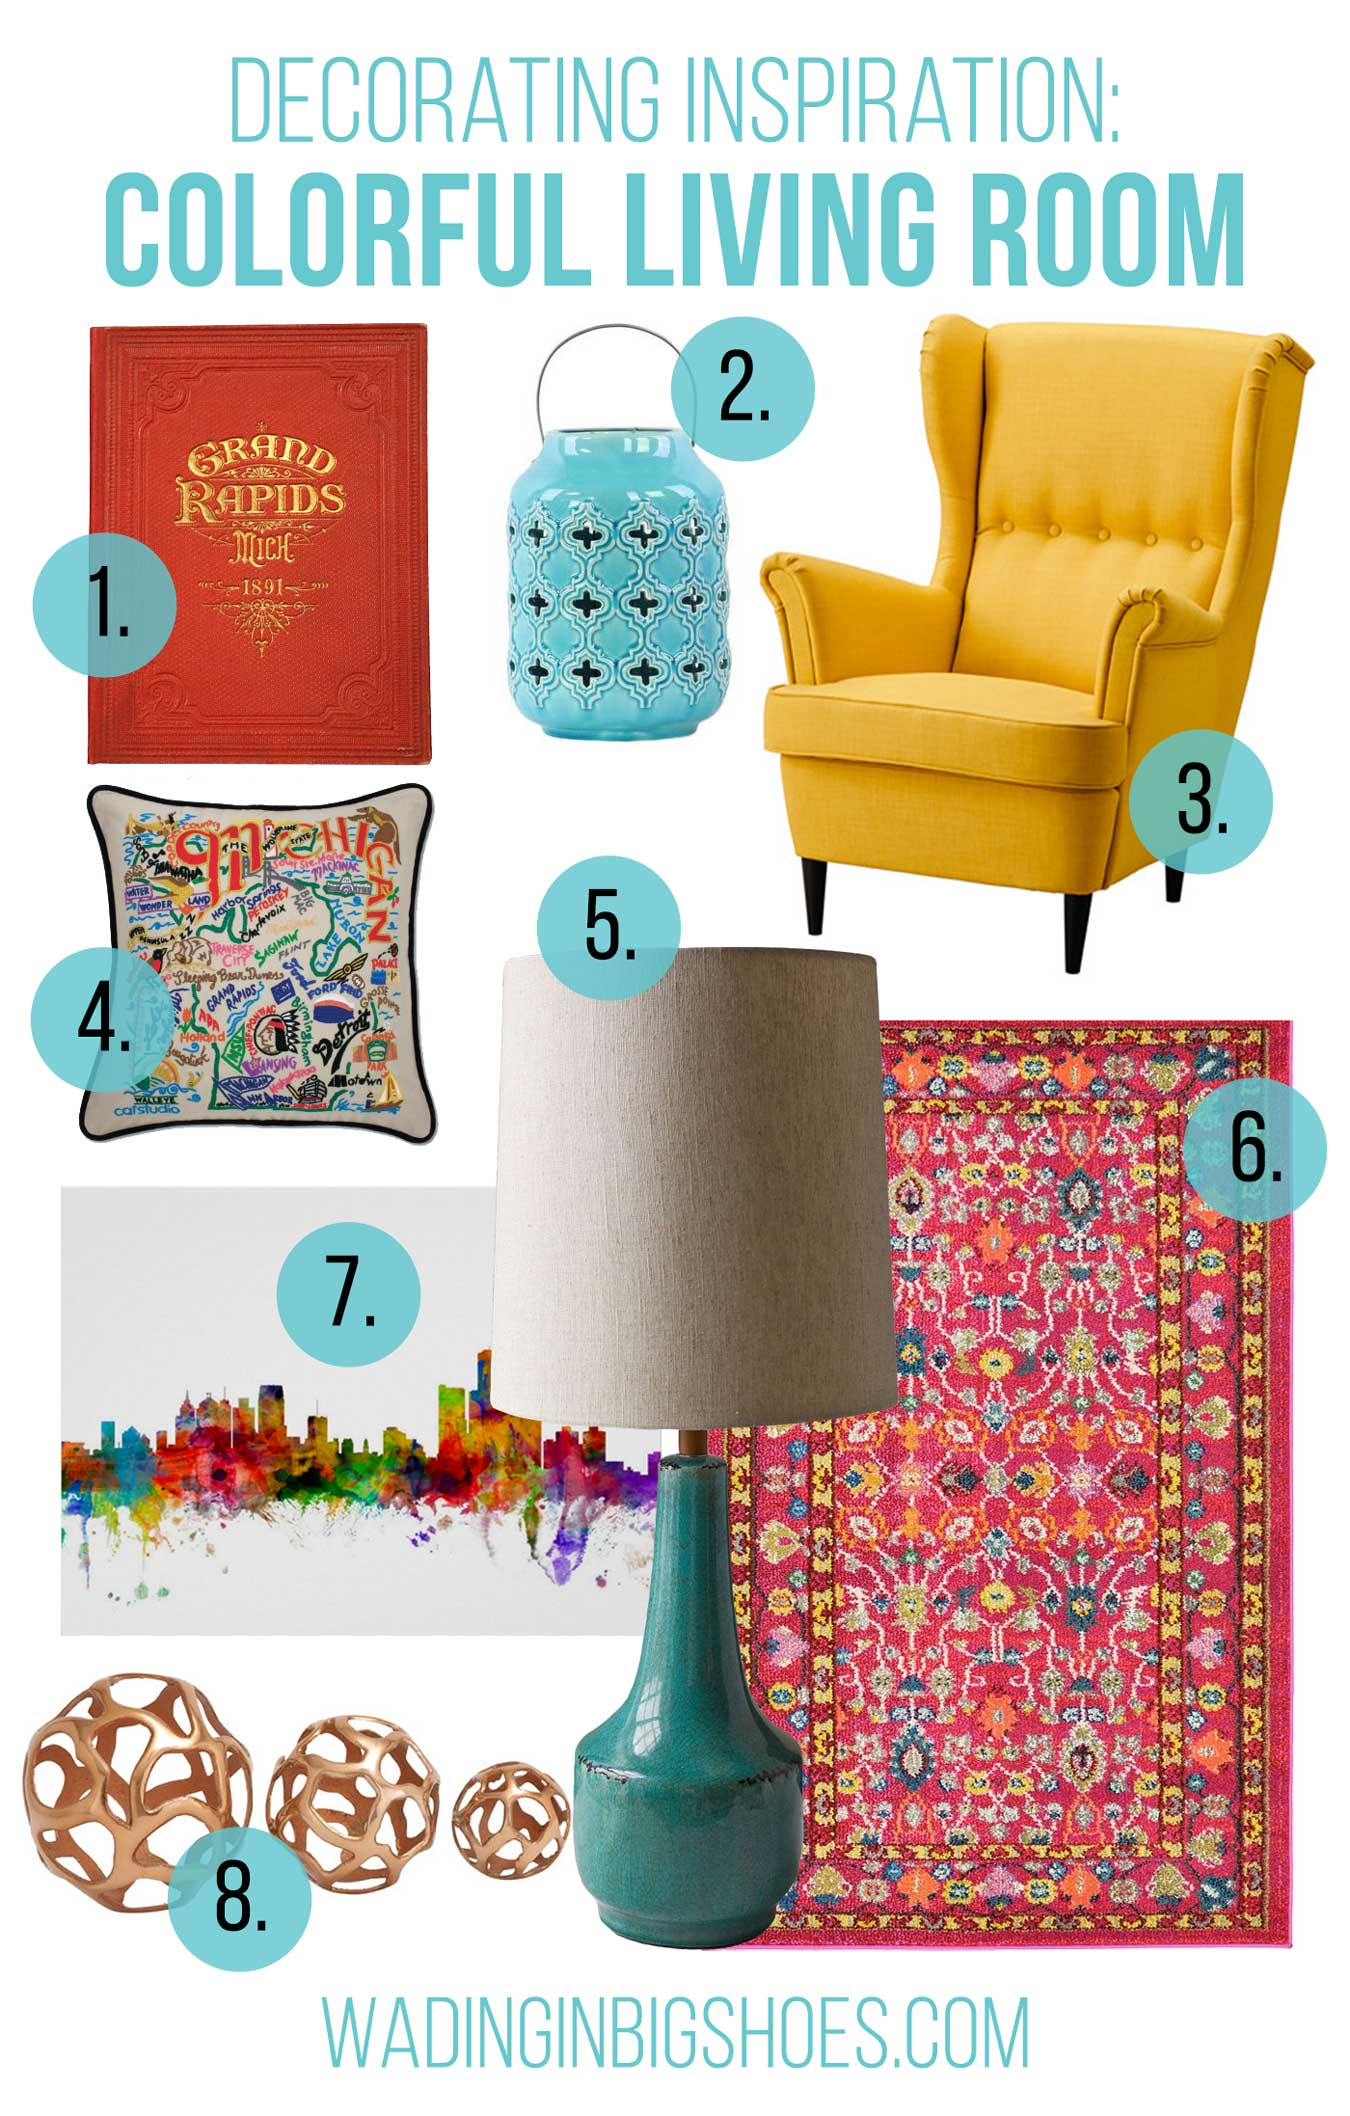 Decorating Inspiration: Colorful Living Room Ideas (via Wading in Big Shoes)